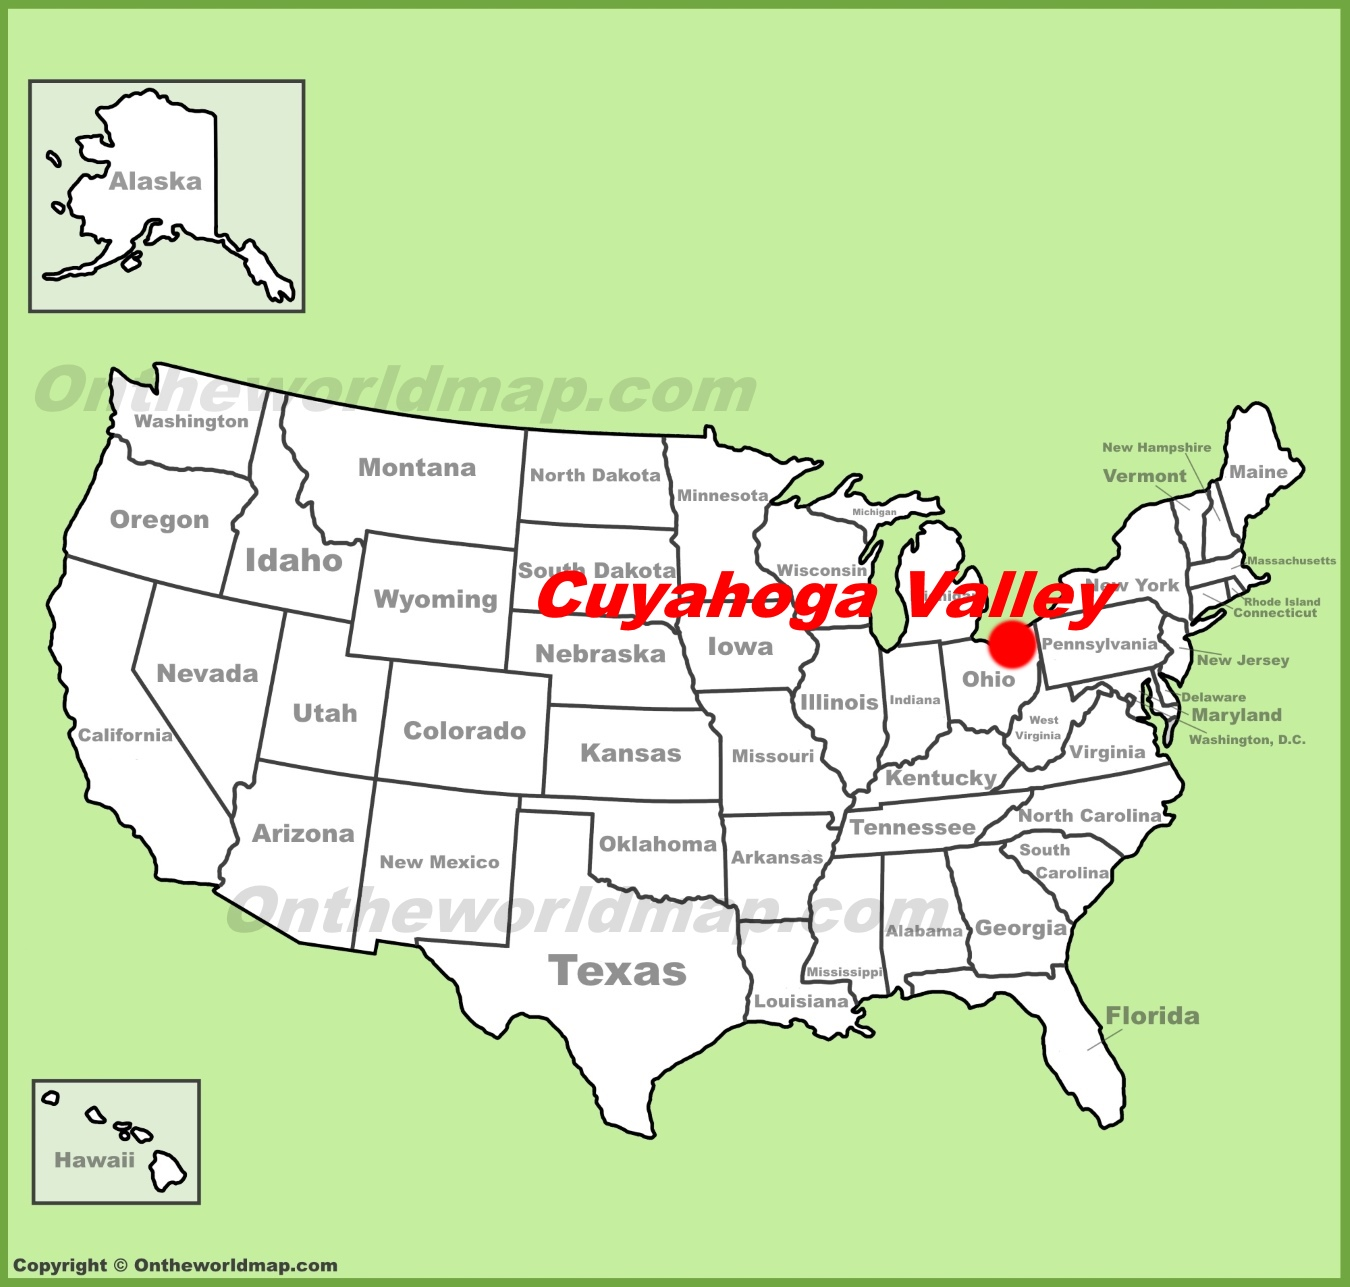 Cuyahoga Valley National Park location on the US Map